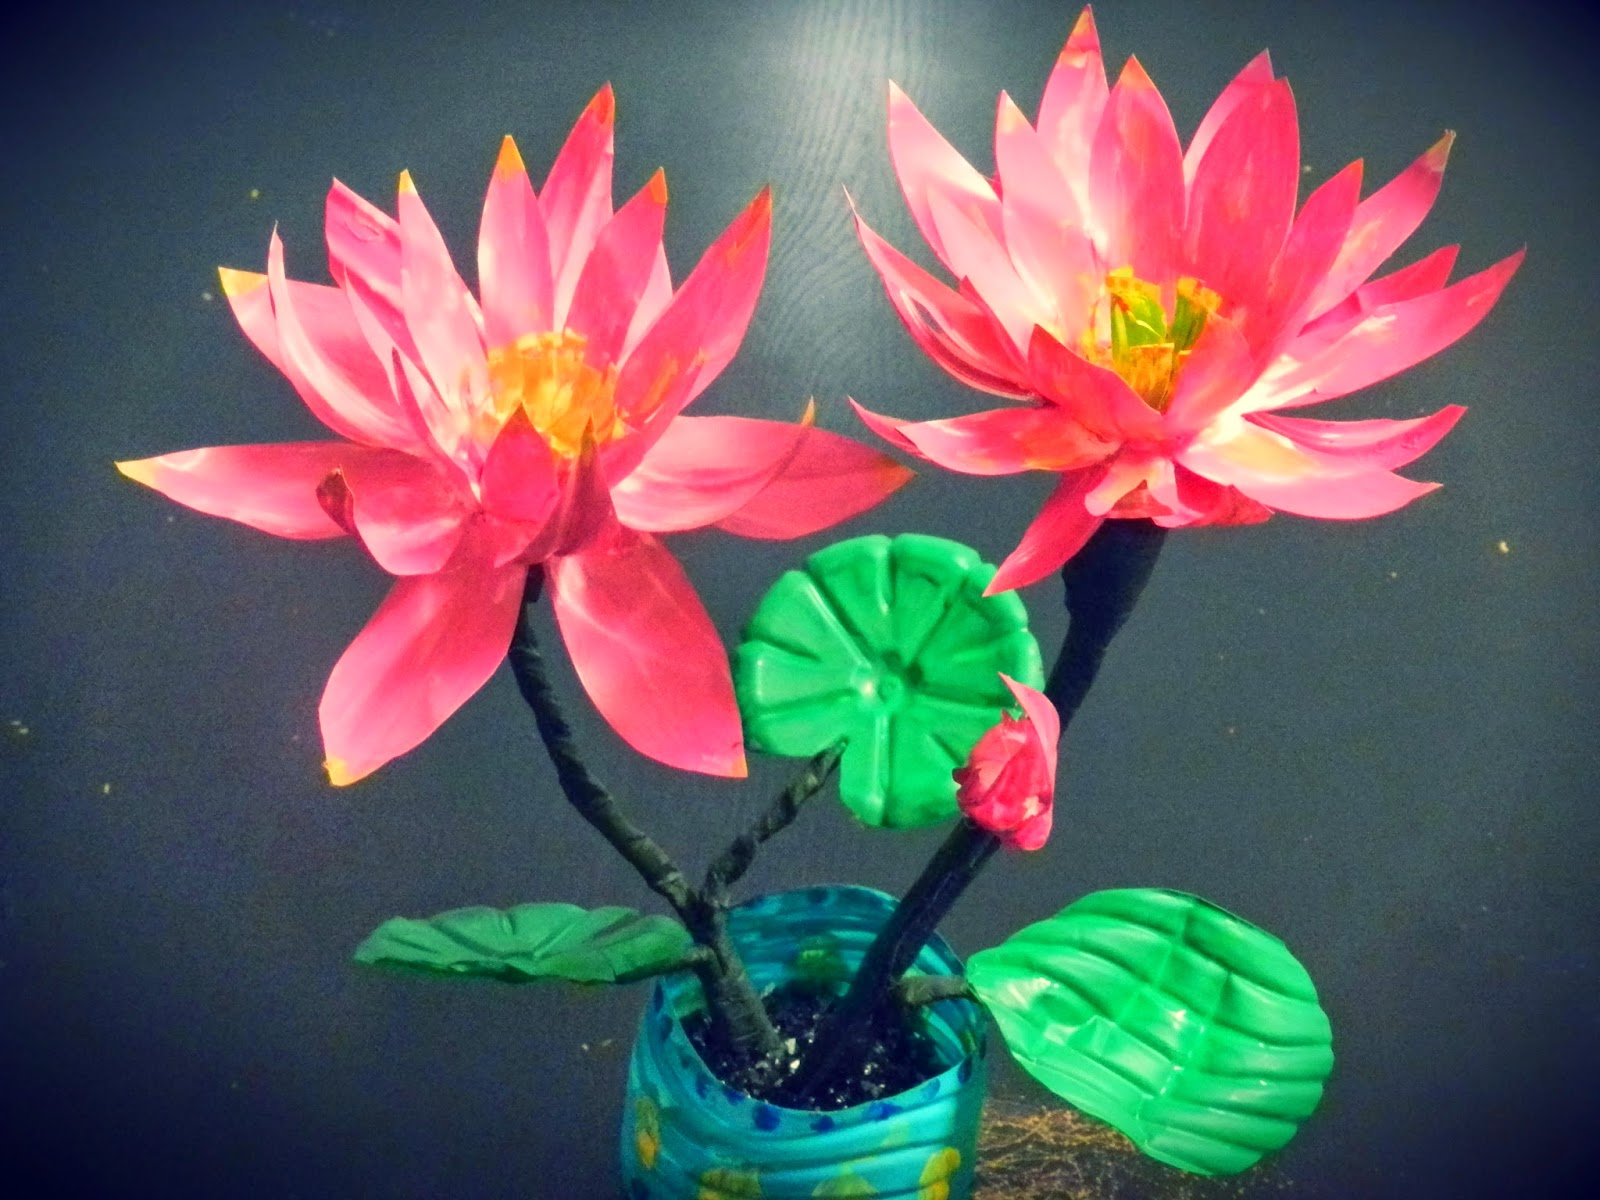 Creative diy crafts recycled diy lotus flowers with waste water this is a beautiful craft to decorate our home here is the tutorial of making lotus flowers with water bottles mightylinksfo